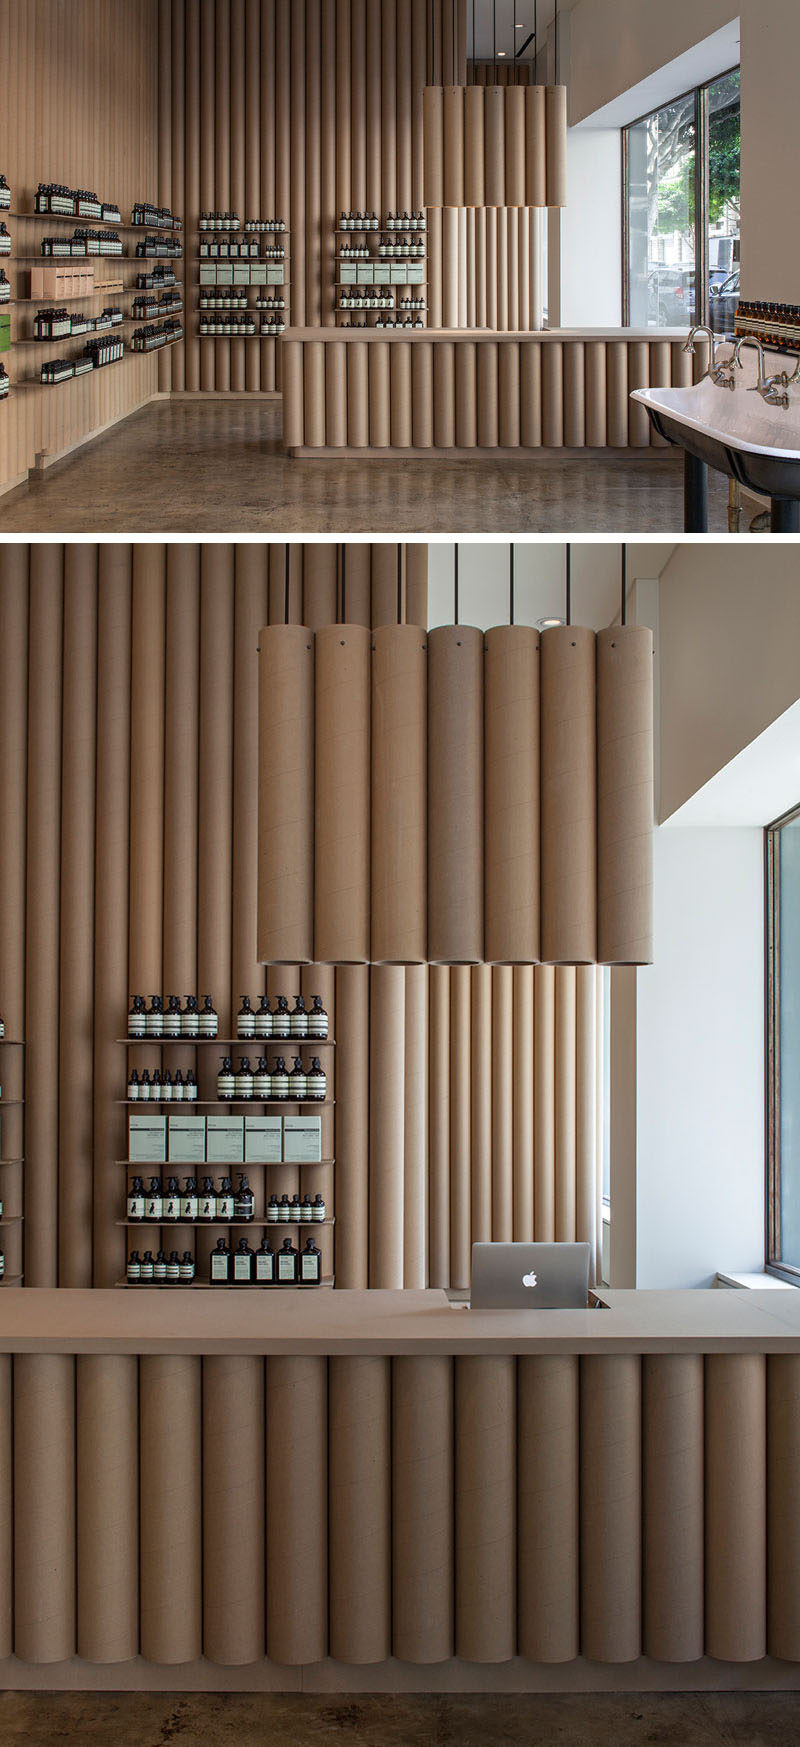 Brooks + Scarpa designed this Aesop store in downtown LA that features 6 inch cardboard tube walls, furniture and fixtures.